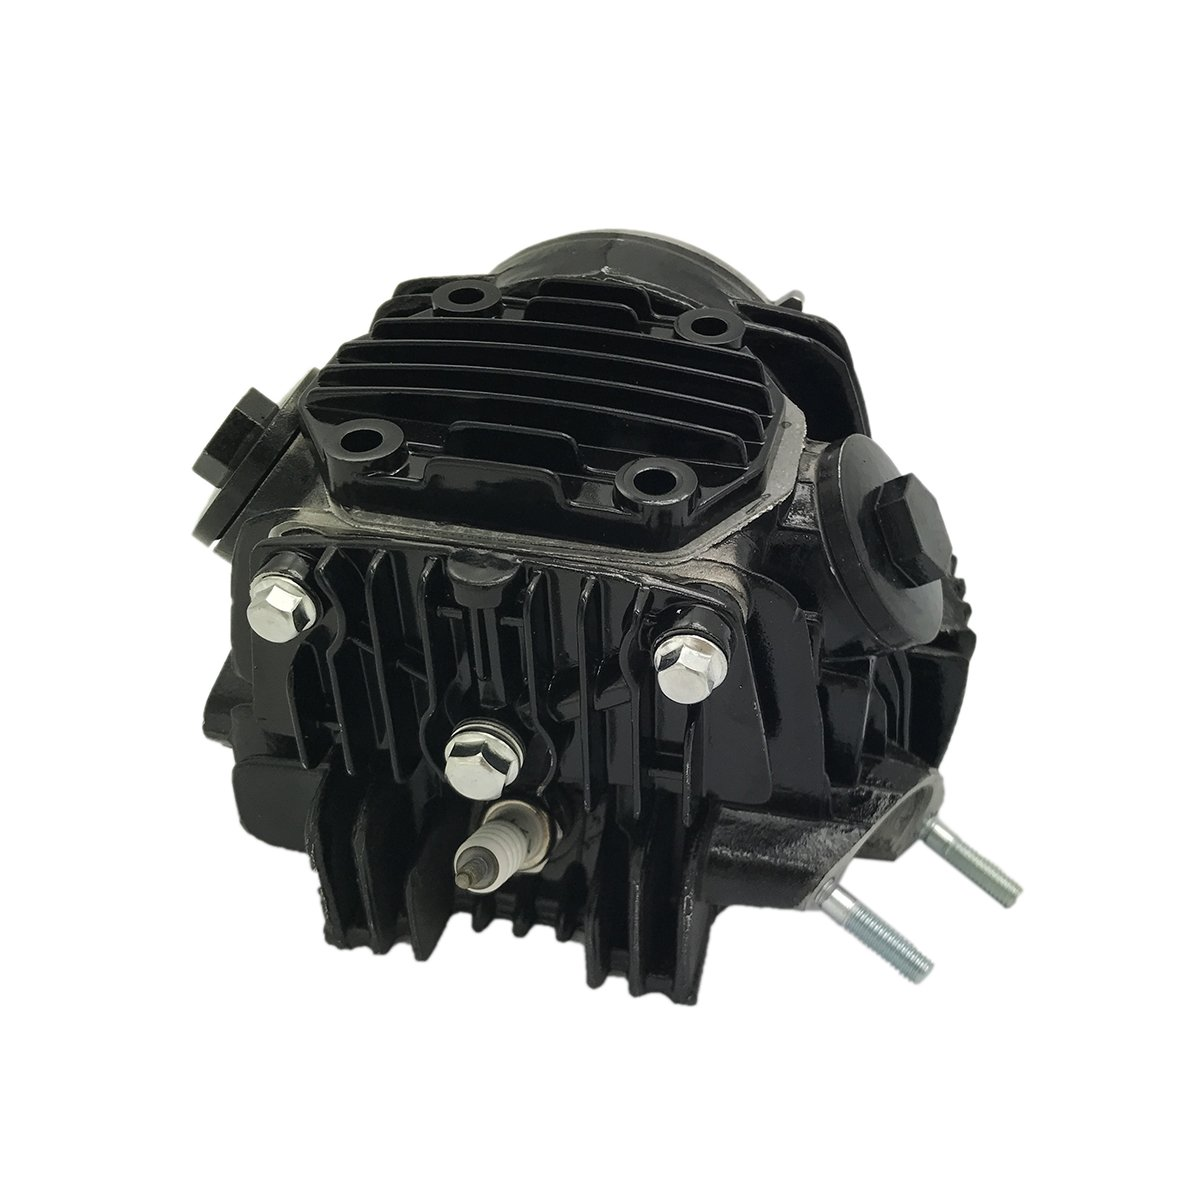 JA-ALL 52.4mm Cylinder Head Assembly for 125cc engines